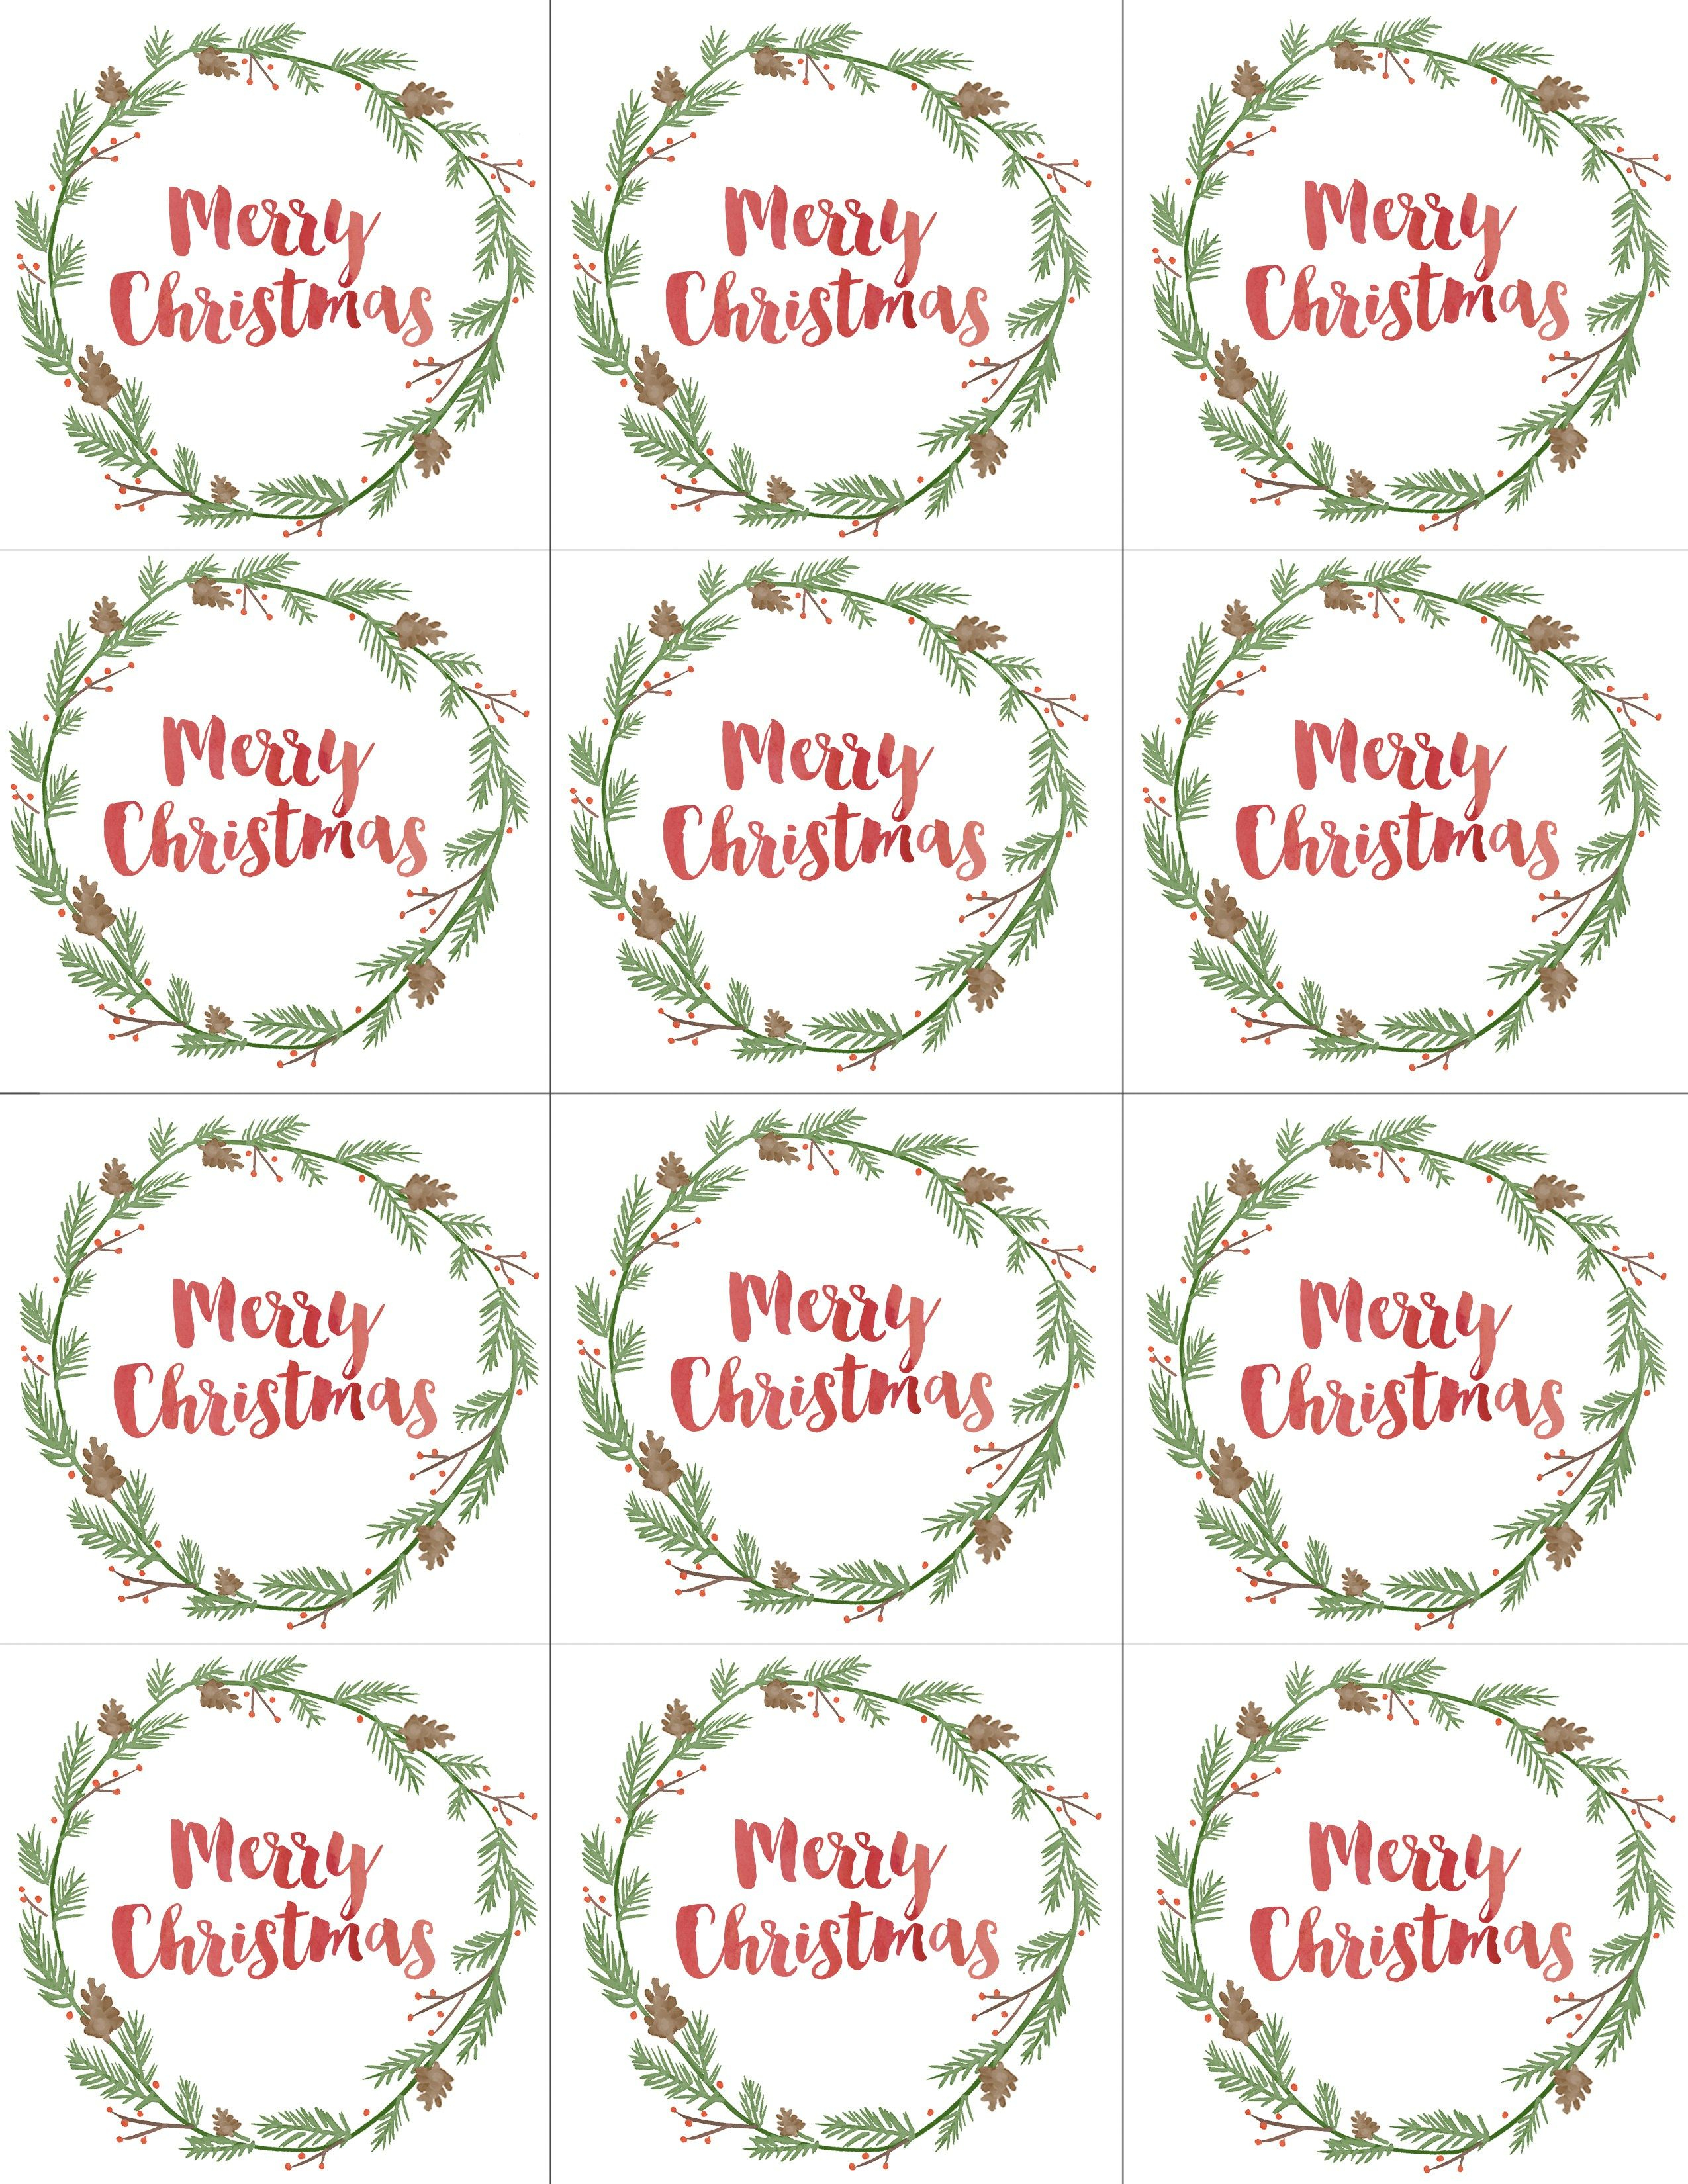 Hand Painted Gift Tags Free Printable | Christmas | Christmas Gift - Free Printable Christmas Pictures